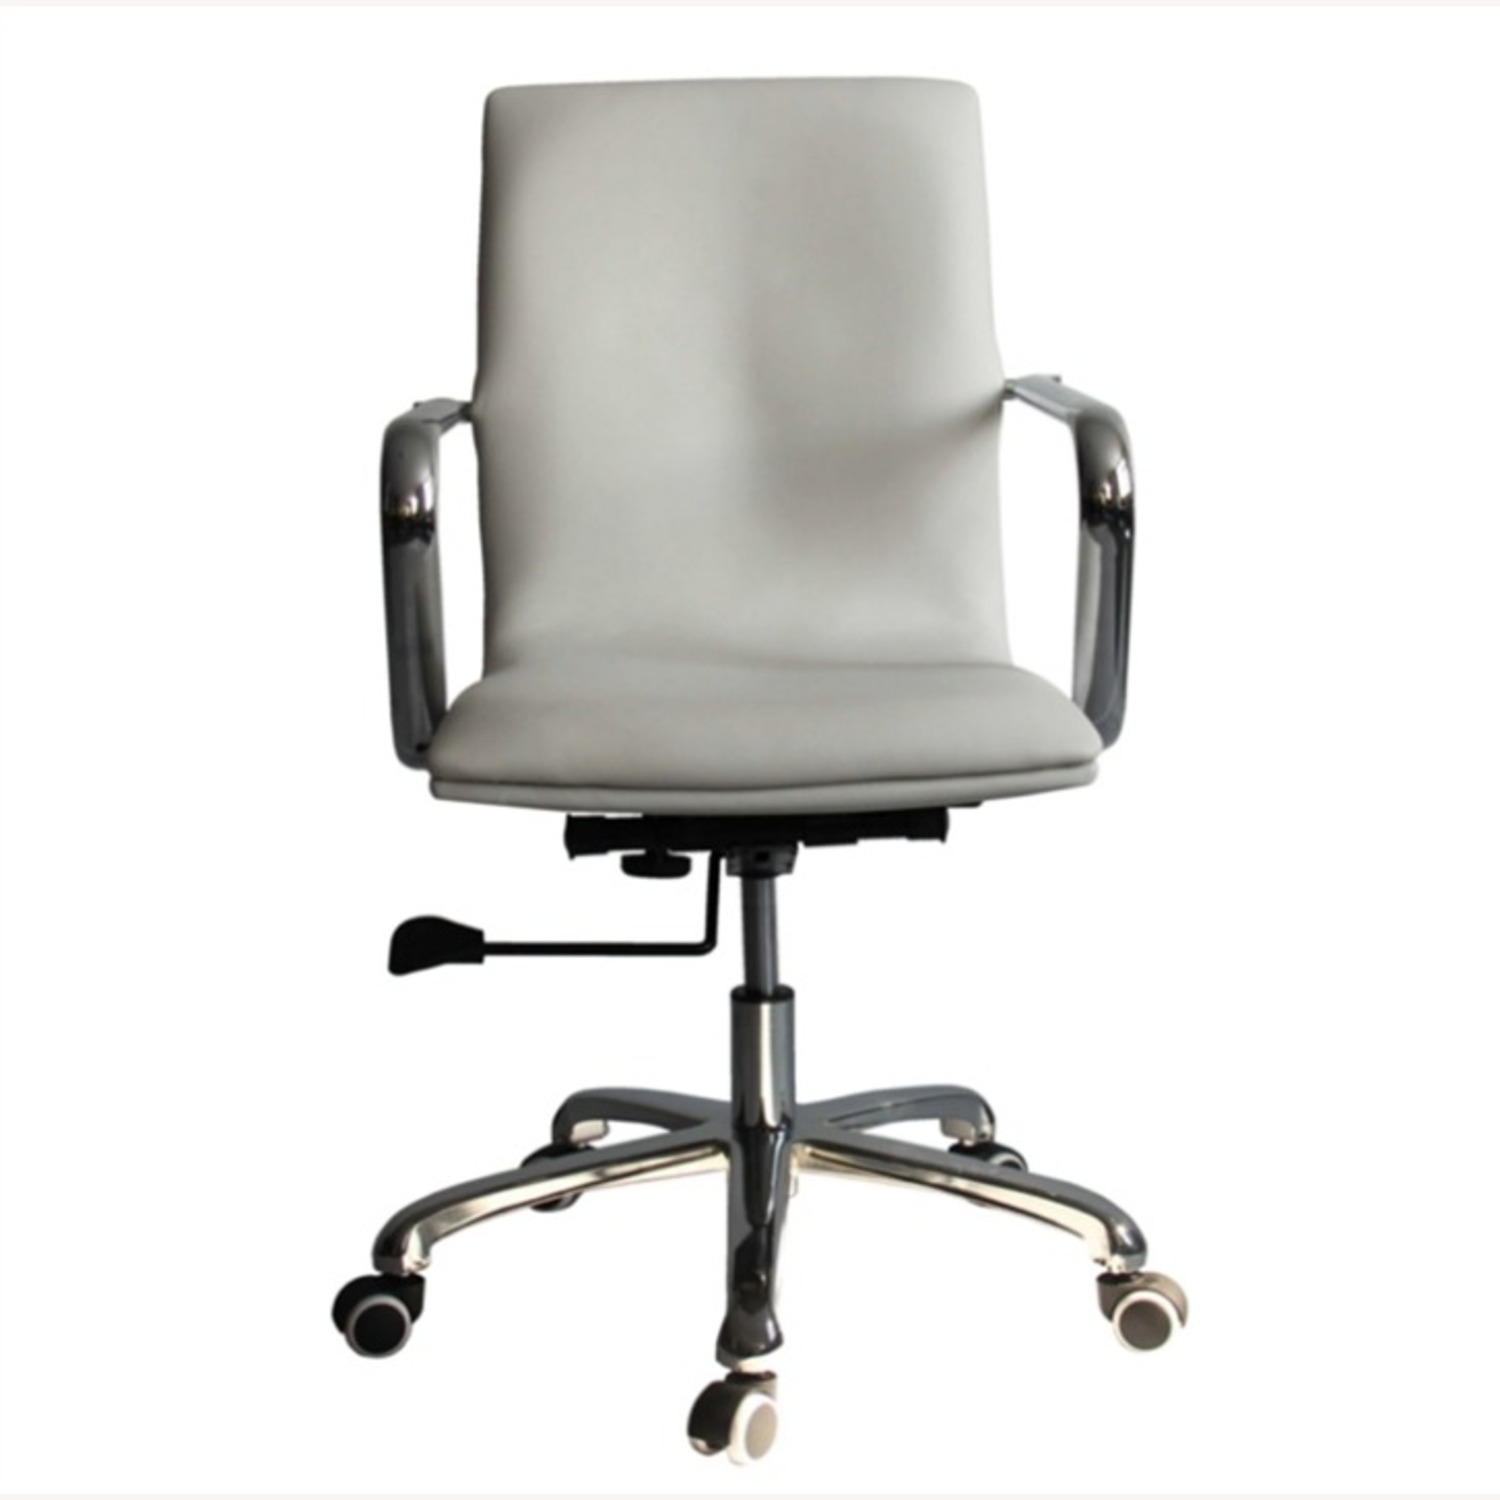 Office Chair In Mid-Back White Leatherette Finish - image-1